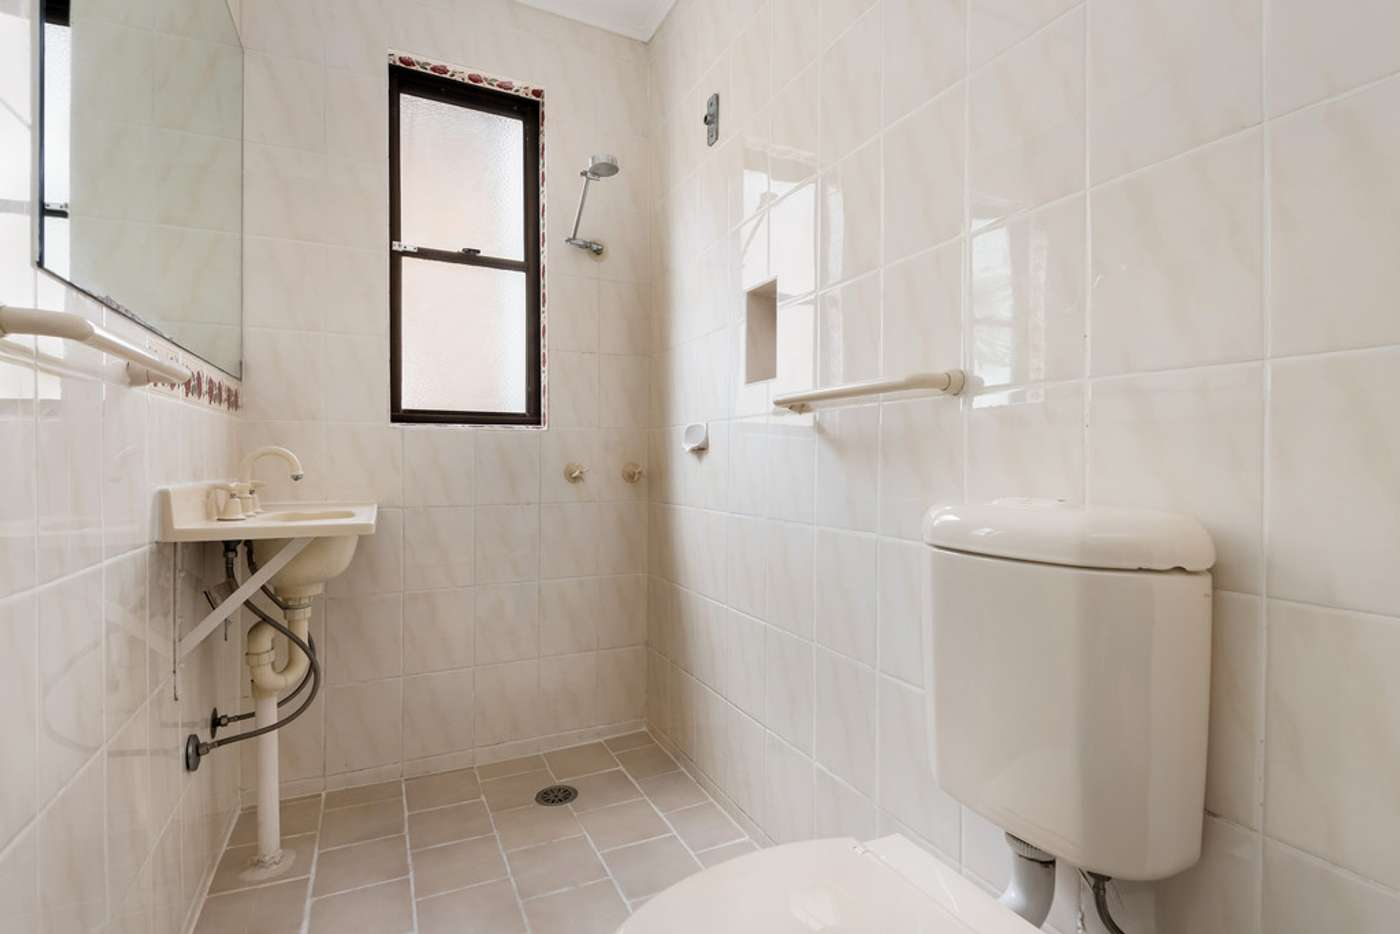 Sixth view of Homely house listing, 40 Lansdowne Street, Surry Hills NSW 2010